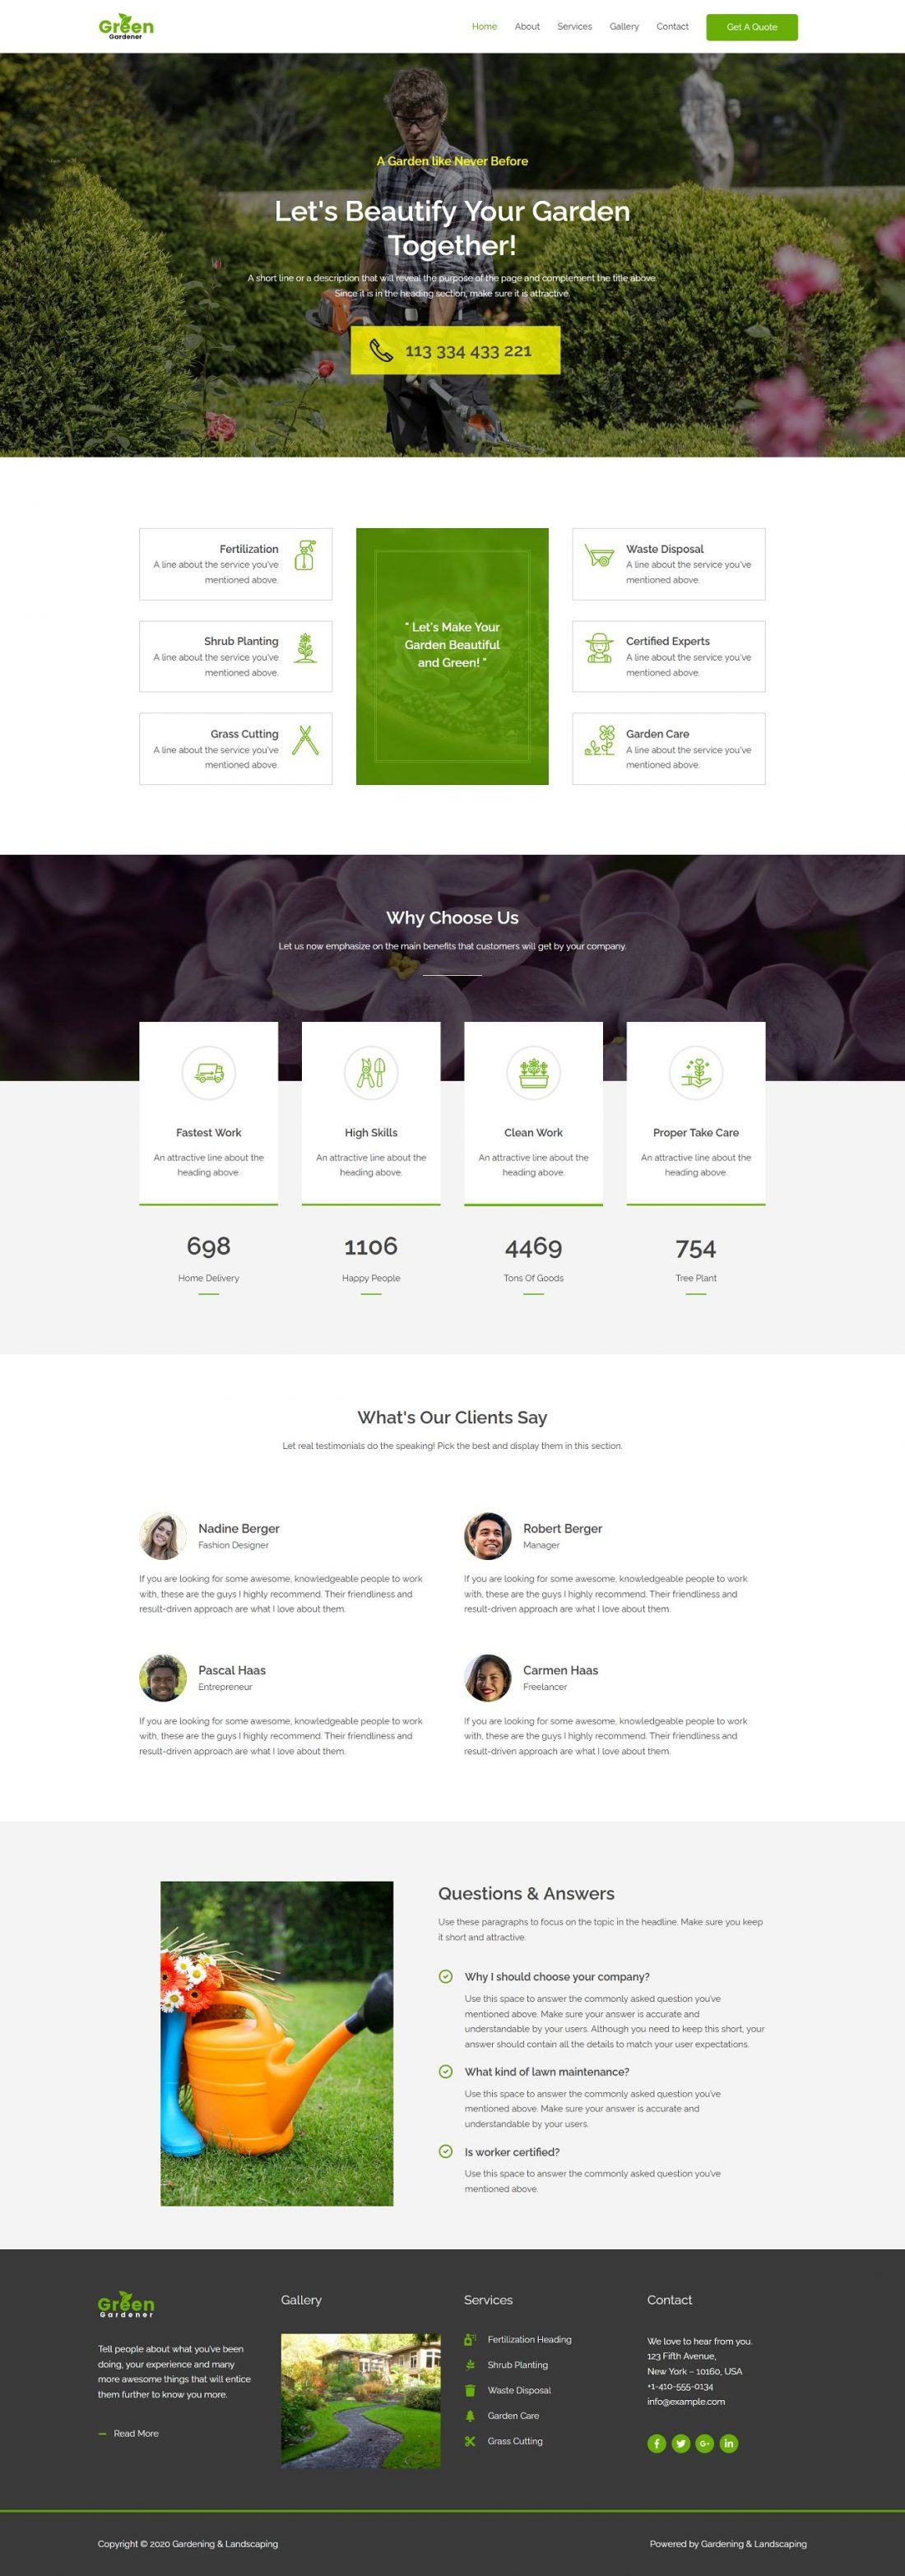 Fagowi.com Website Design Templates For Gardening and Landscaping - Home Page Image